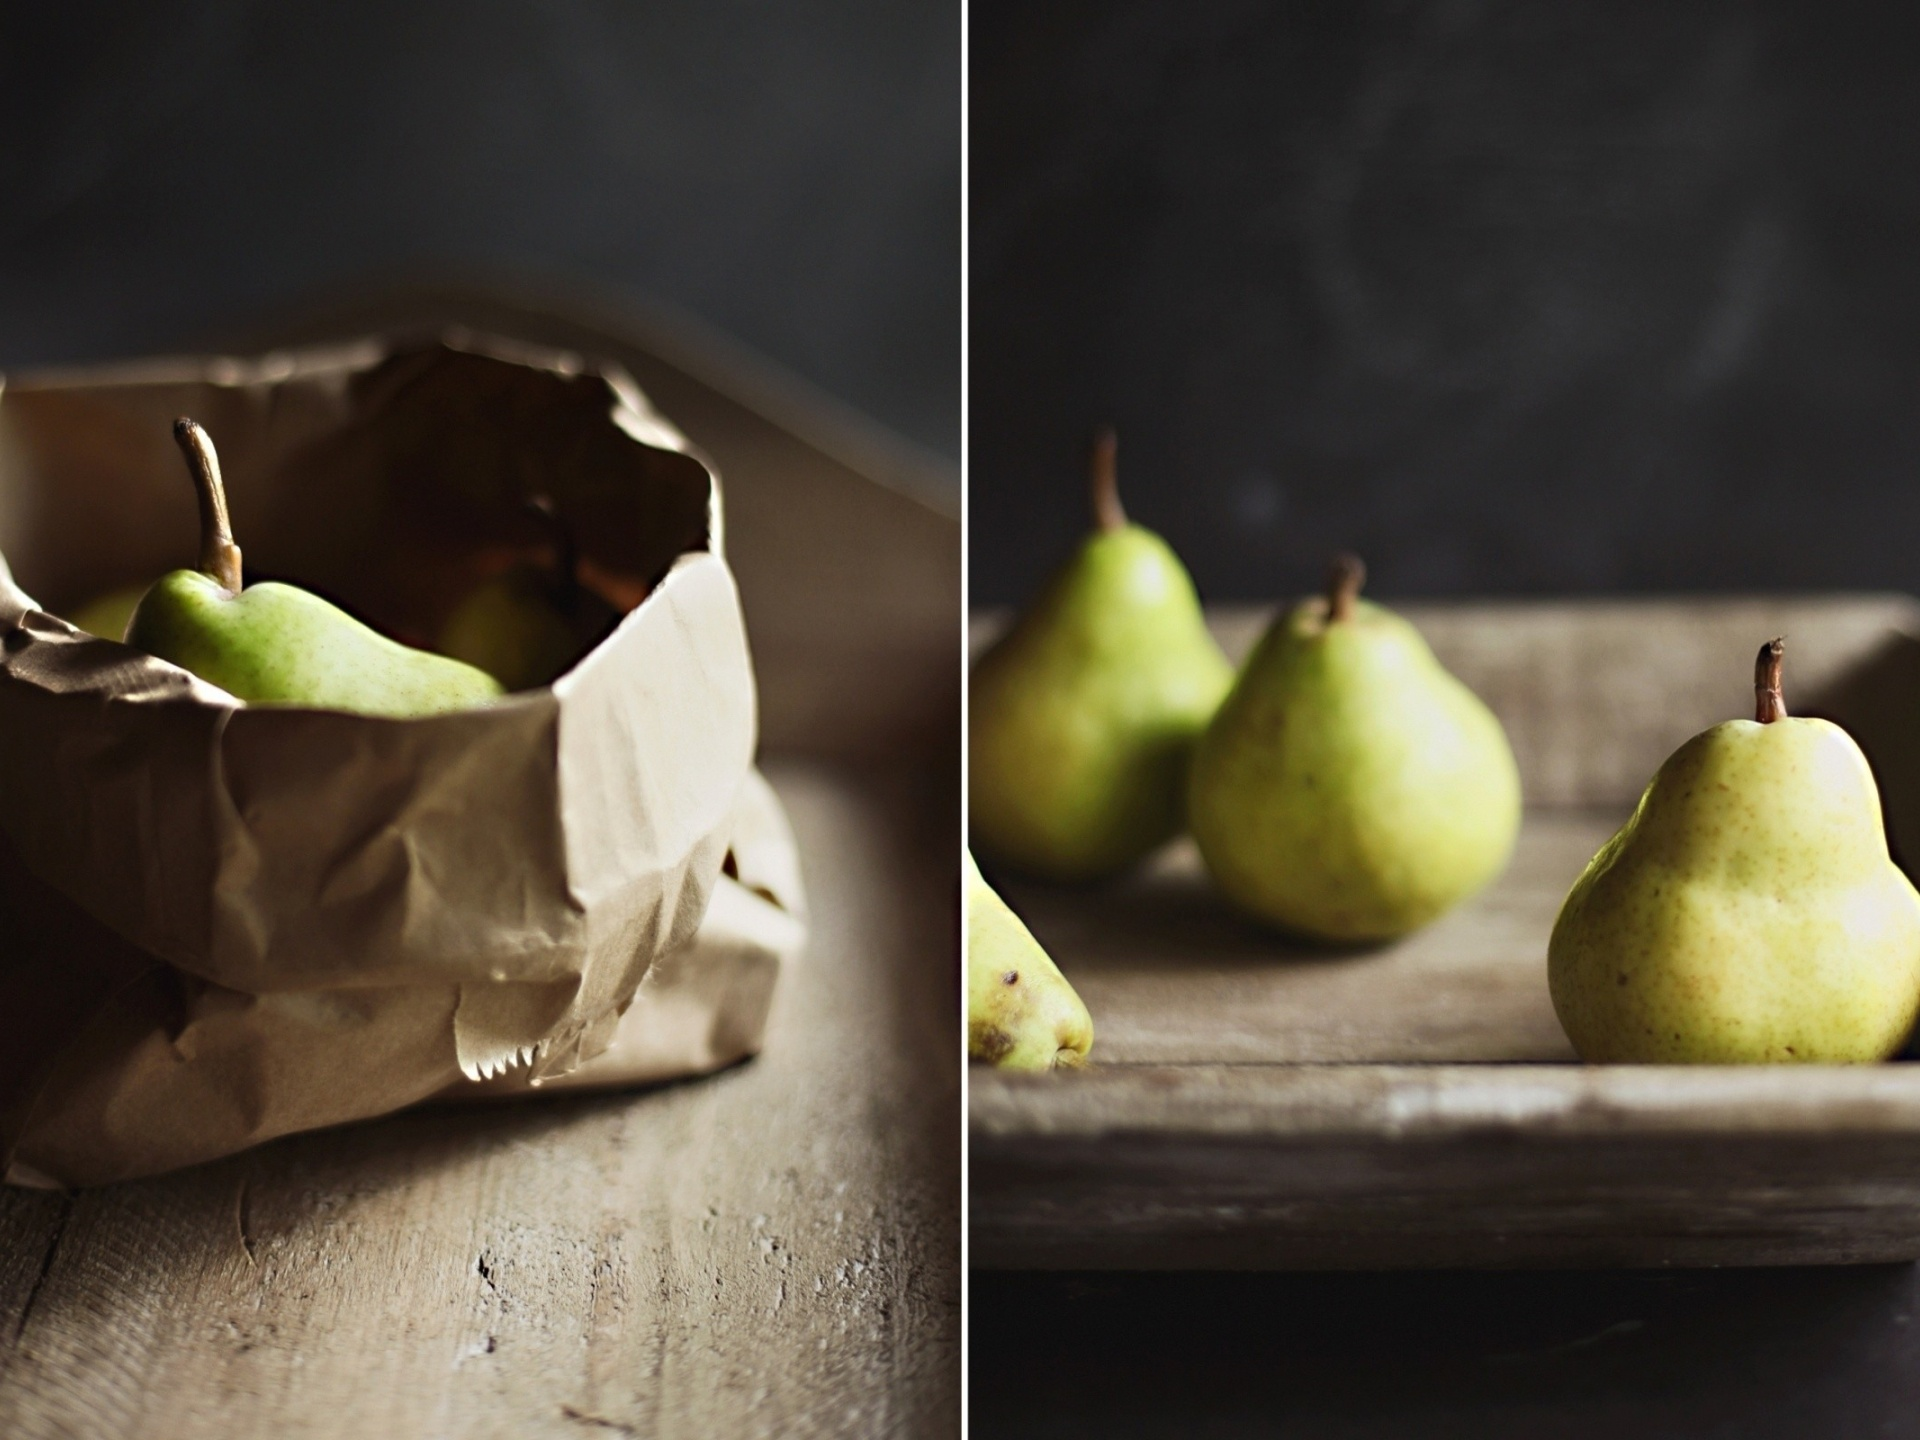 click to free download the wallpaper--Beautiful Pics of Nature, Ripe Pears, One Put in Paper, Ready to be Given as Gift 1920X1440 free wallpaper download